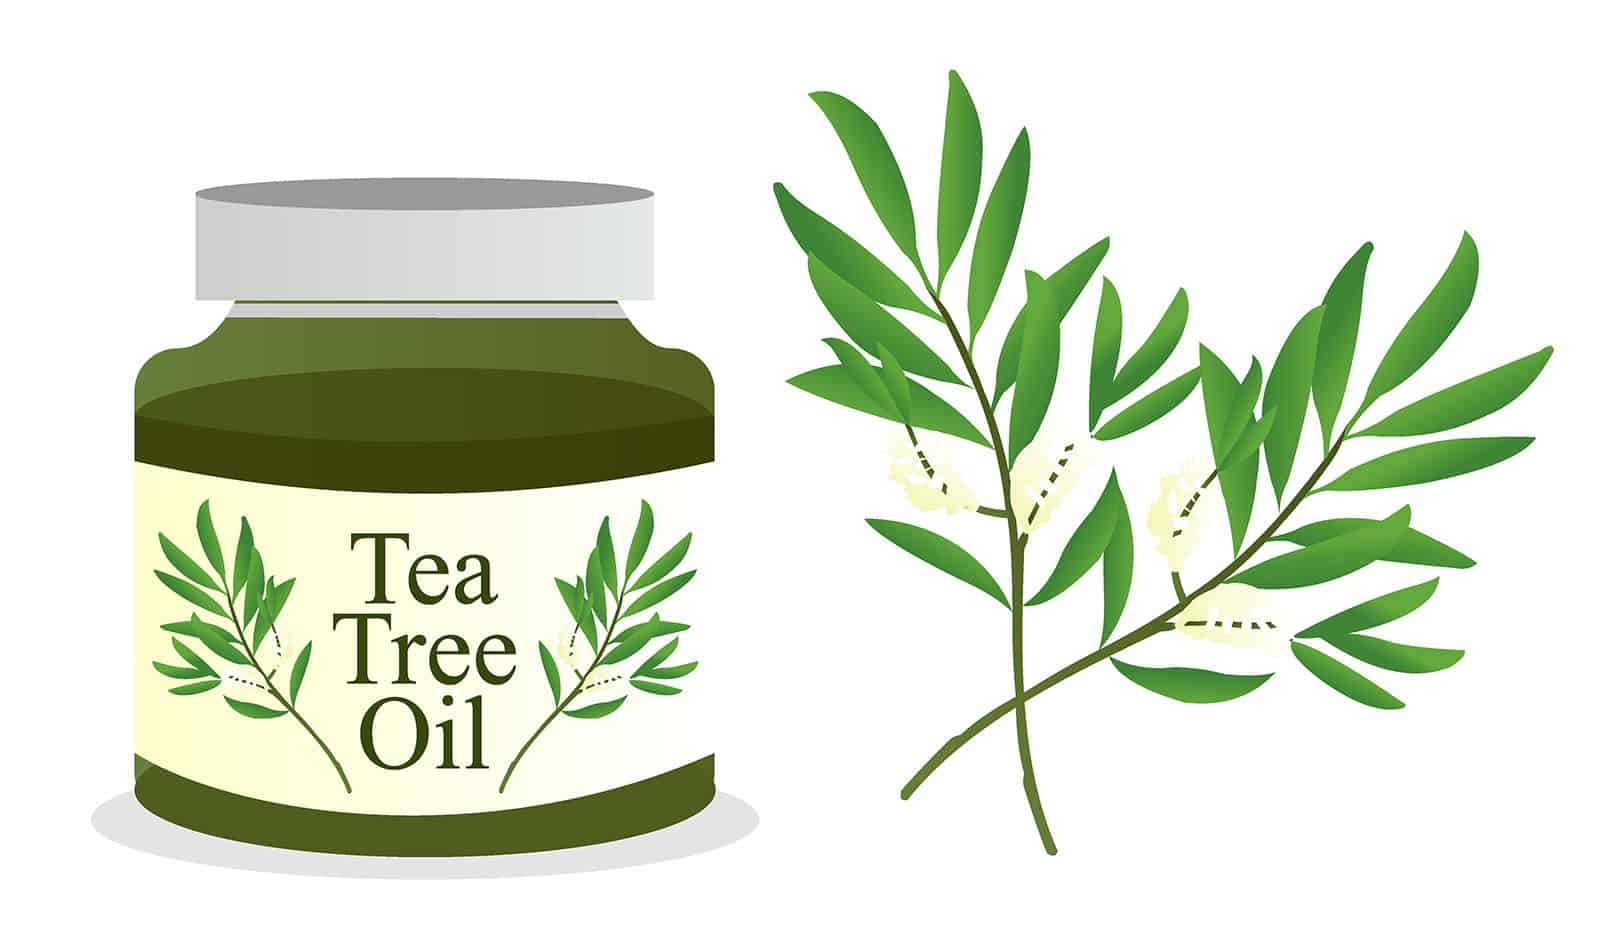 3 Ways to Use Tea Tree Oil in Your Home